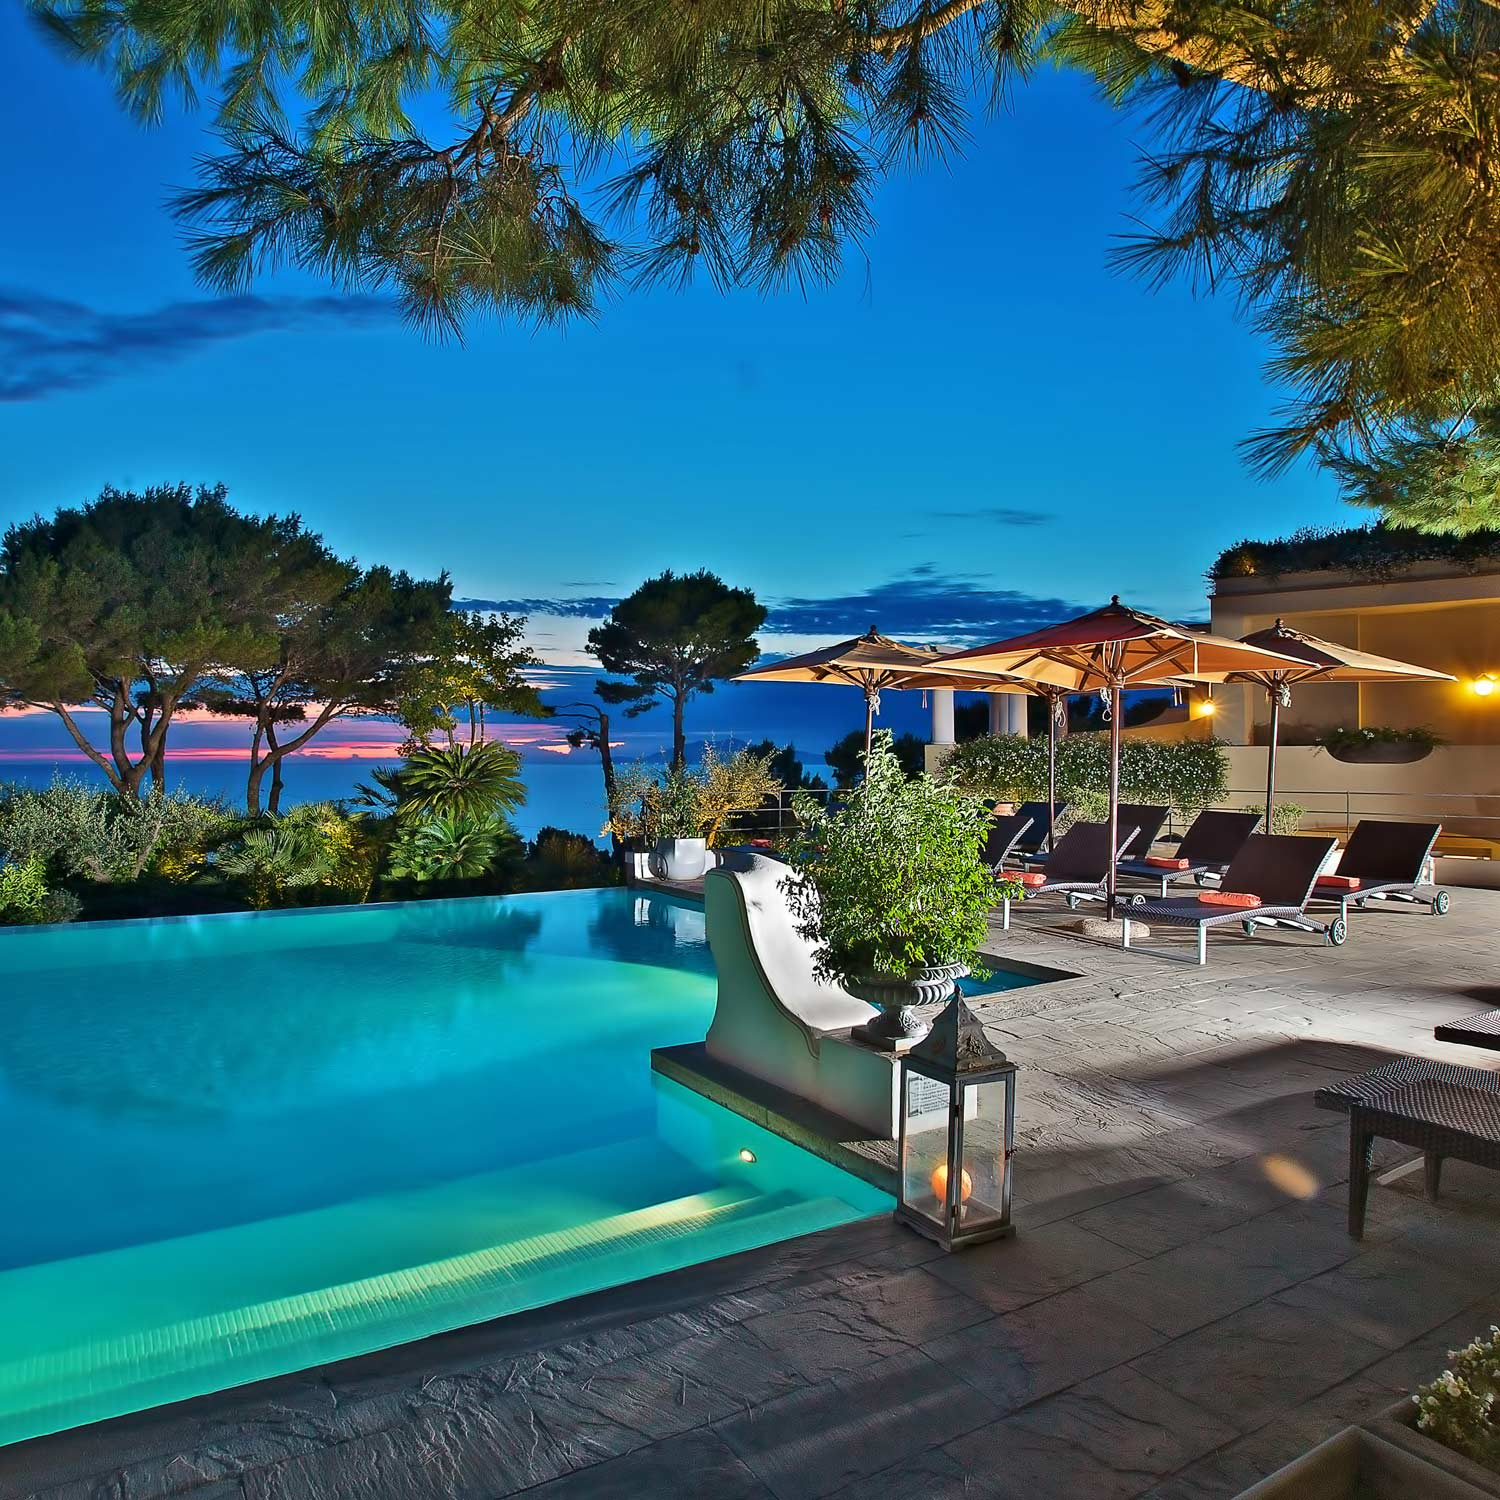 10 Hotels Ll Recognise: Hotel On Capri, Italy, With Pool And Sea View